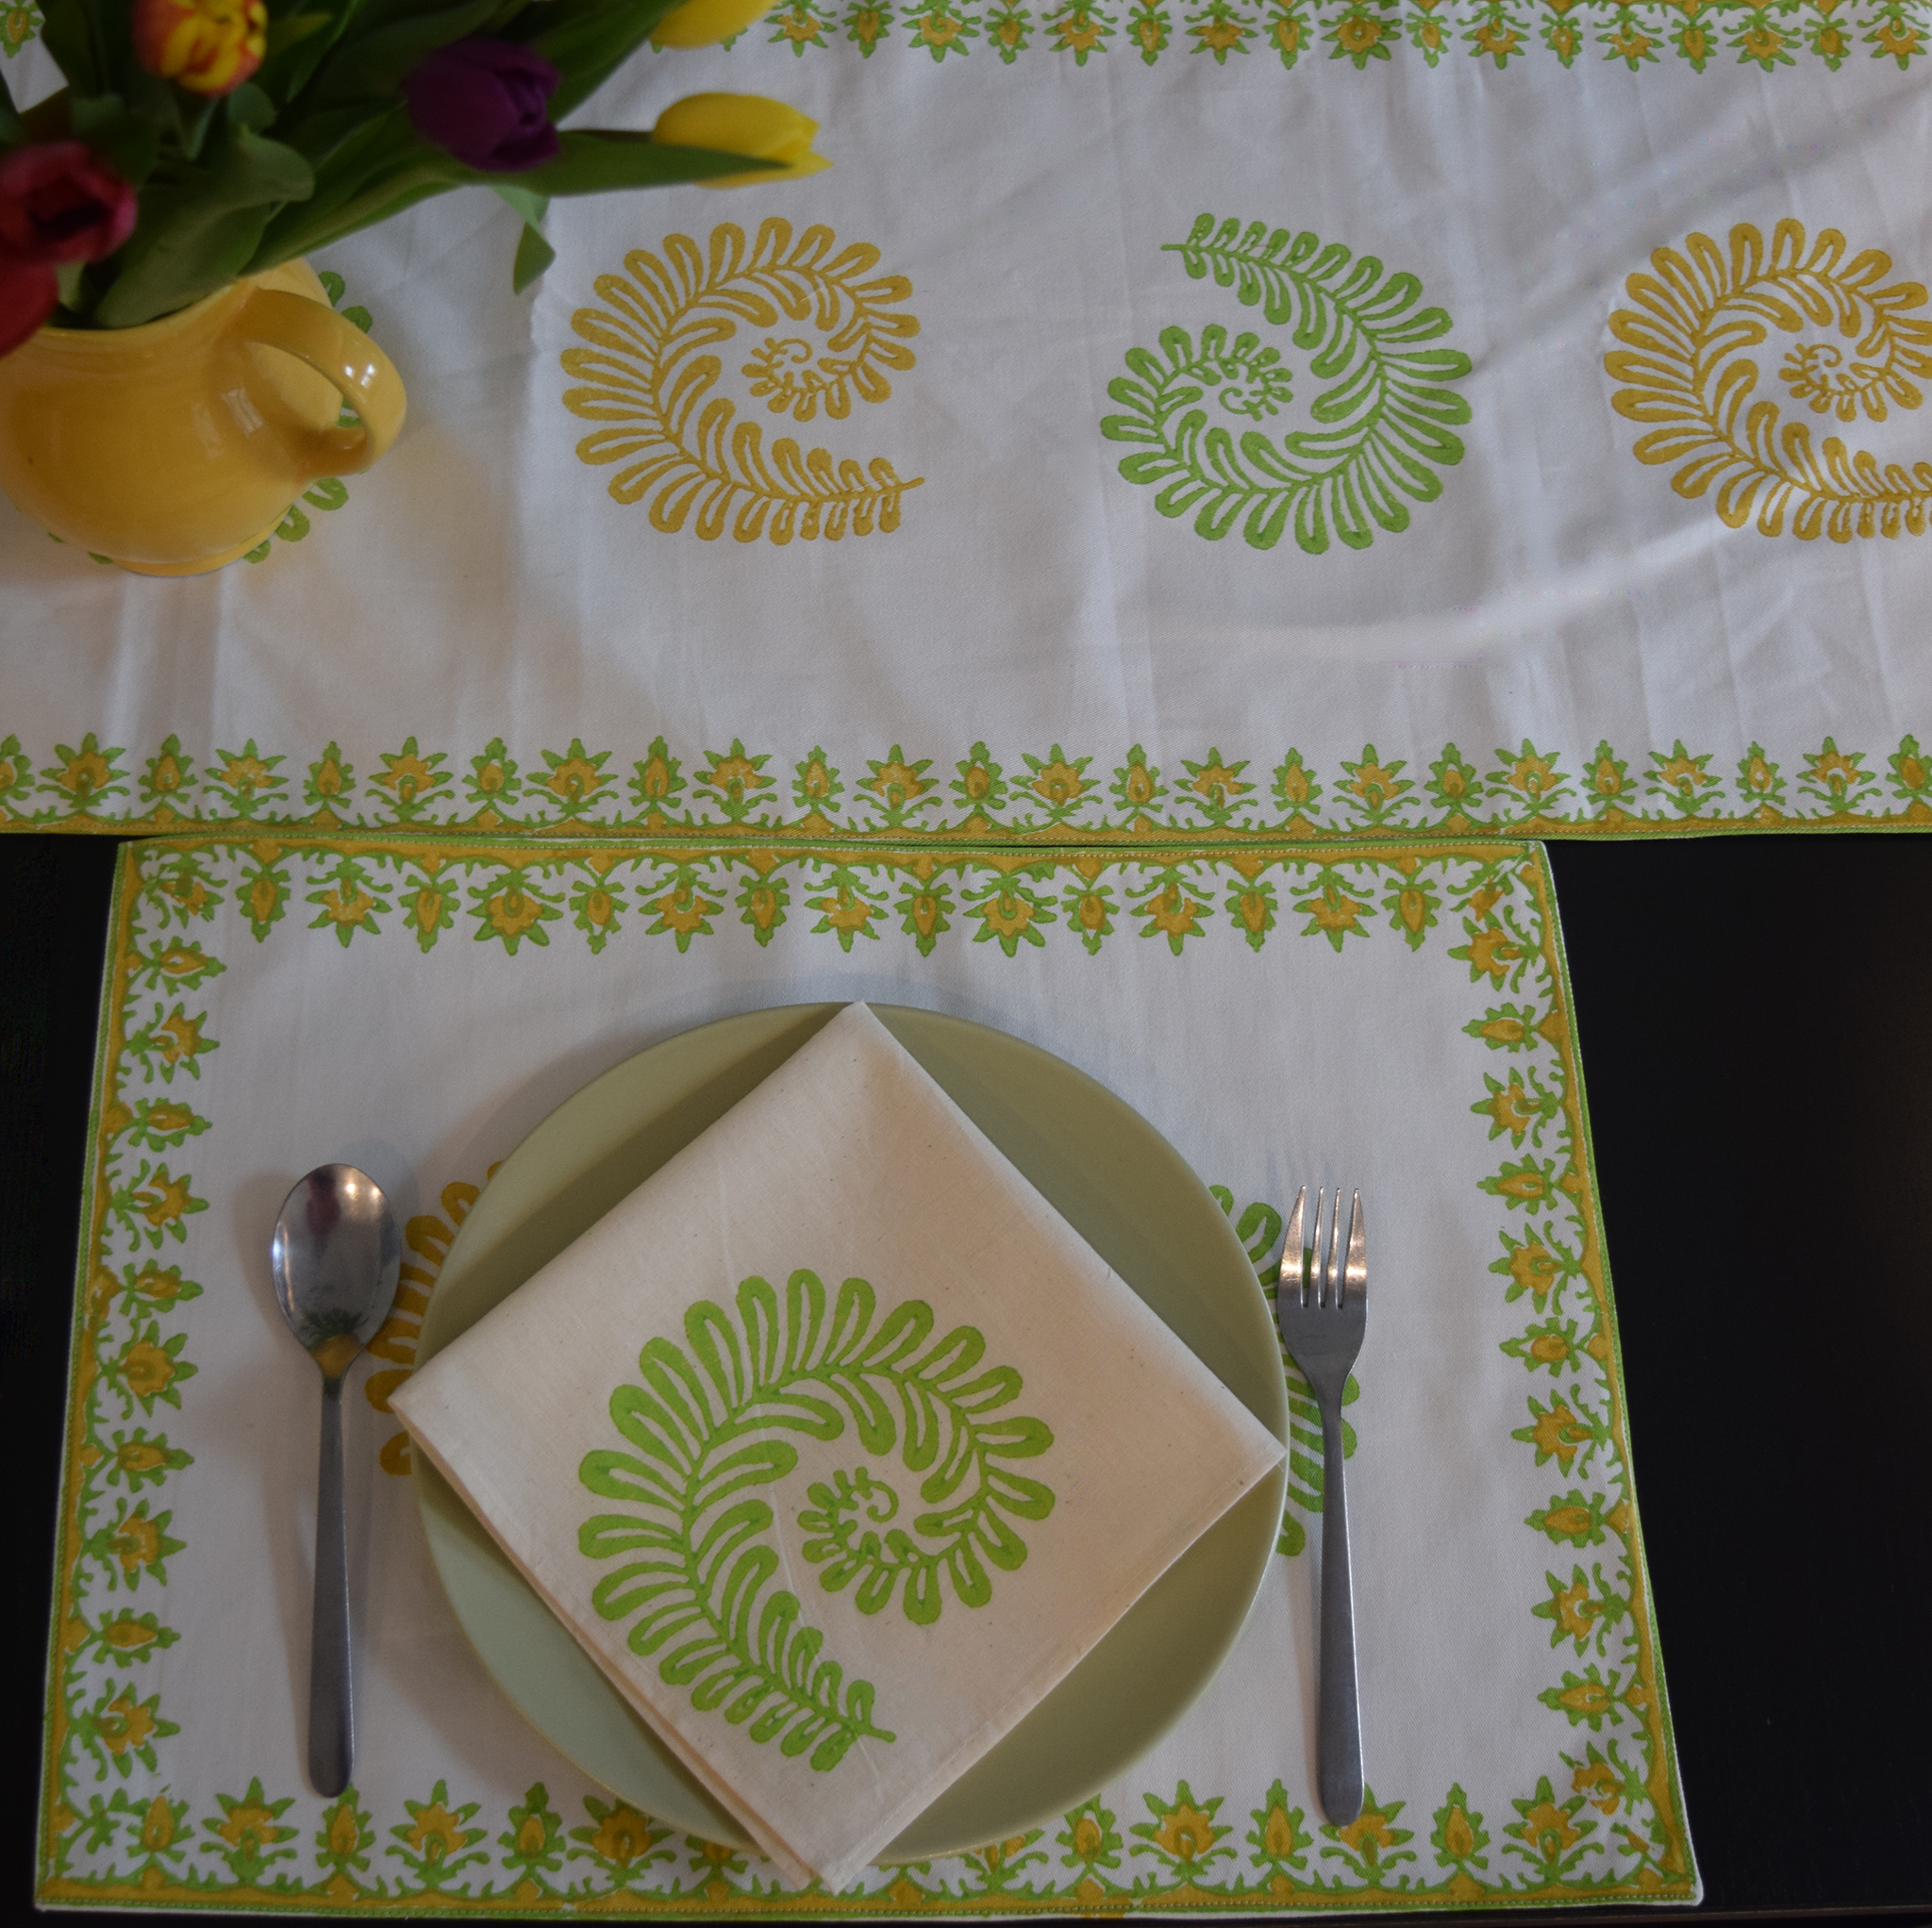 yellow and light green fern patterns on white background  in a table setting